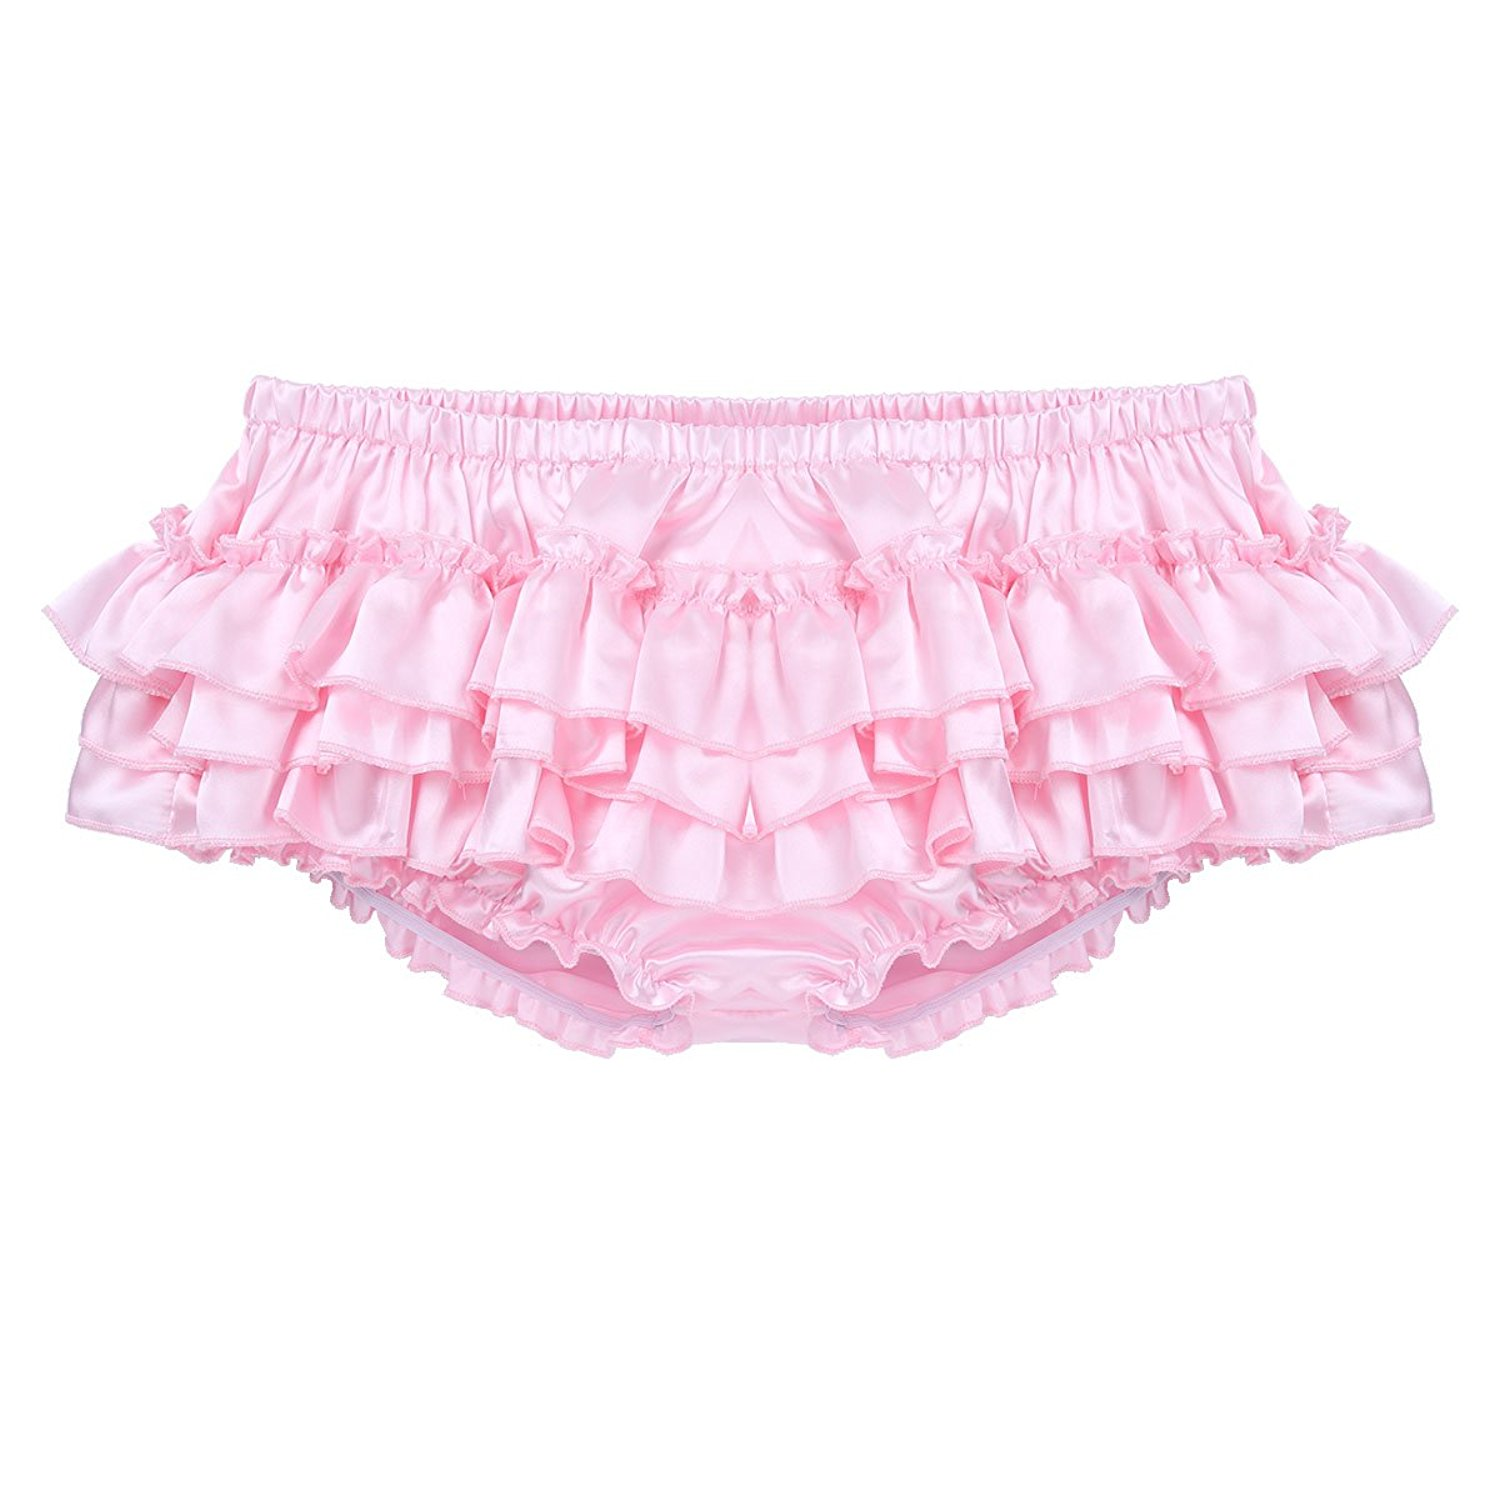 c773eaf65ff6 Get Quotations · ACSUSS Men's Satin Frilly Thong Sissy Crossdress Bloomer Ruffled  Skirted Panties